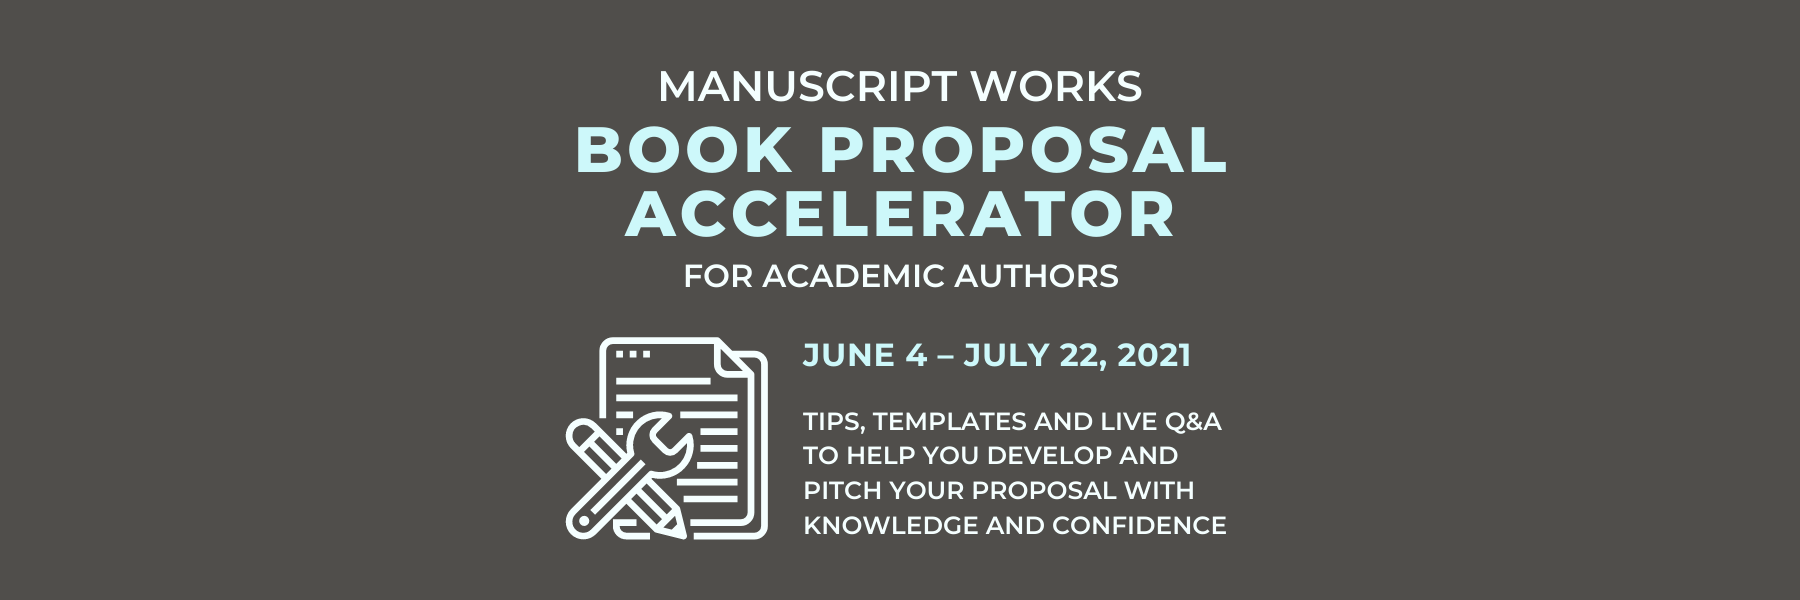 Manuscript Works Book Proposal Accelerator for academic authors. June 4 to July 22, 2021. Tips, templates, and live Q&A to help you develop and pitch your proposal with knowledge and confidence.